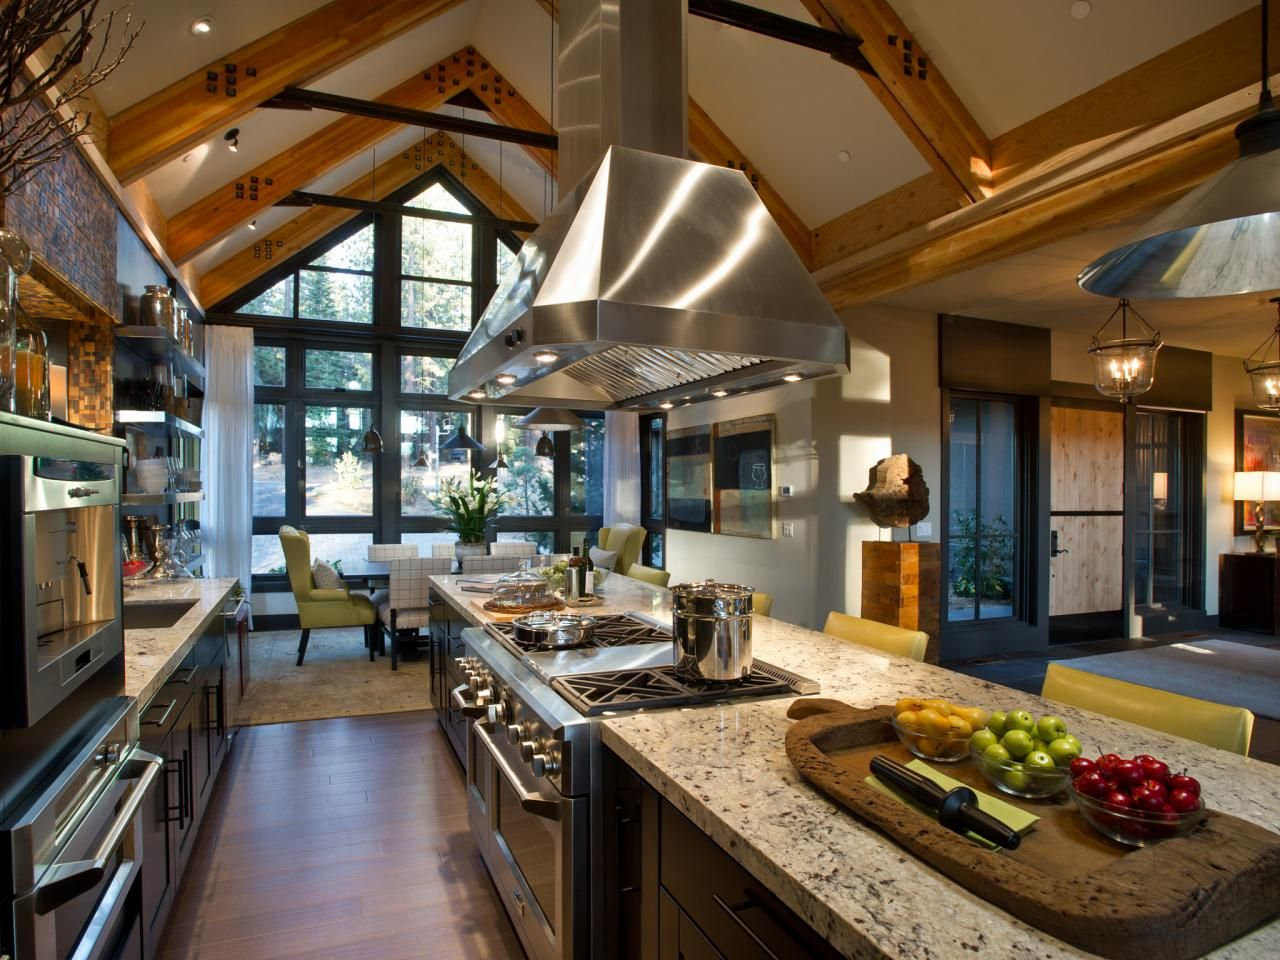 This Rustic Modern Kitchen In The 2014 Hgtv Dream Home Has It All